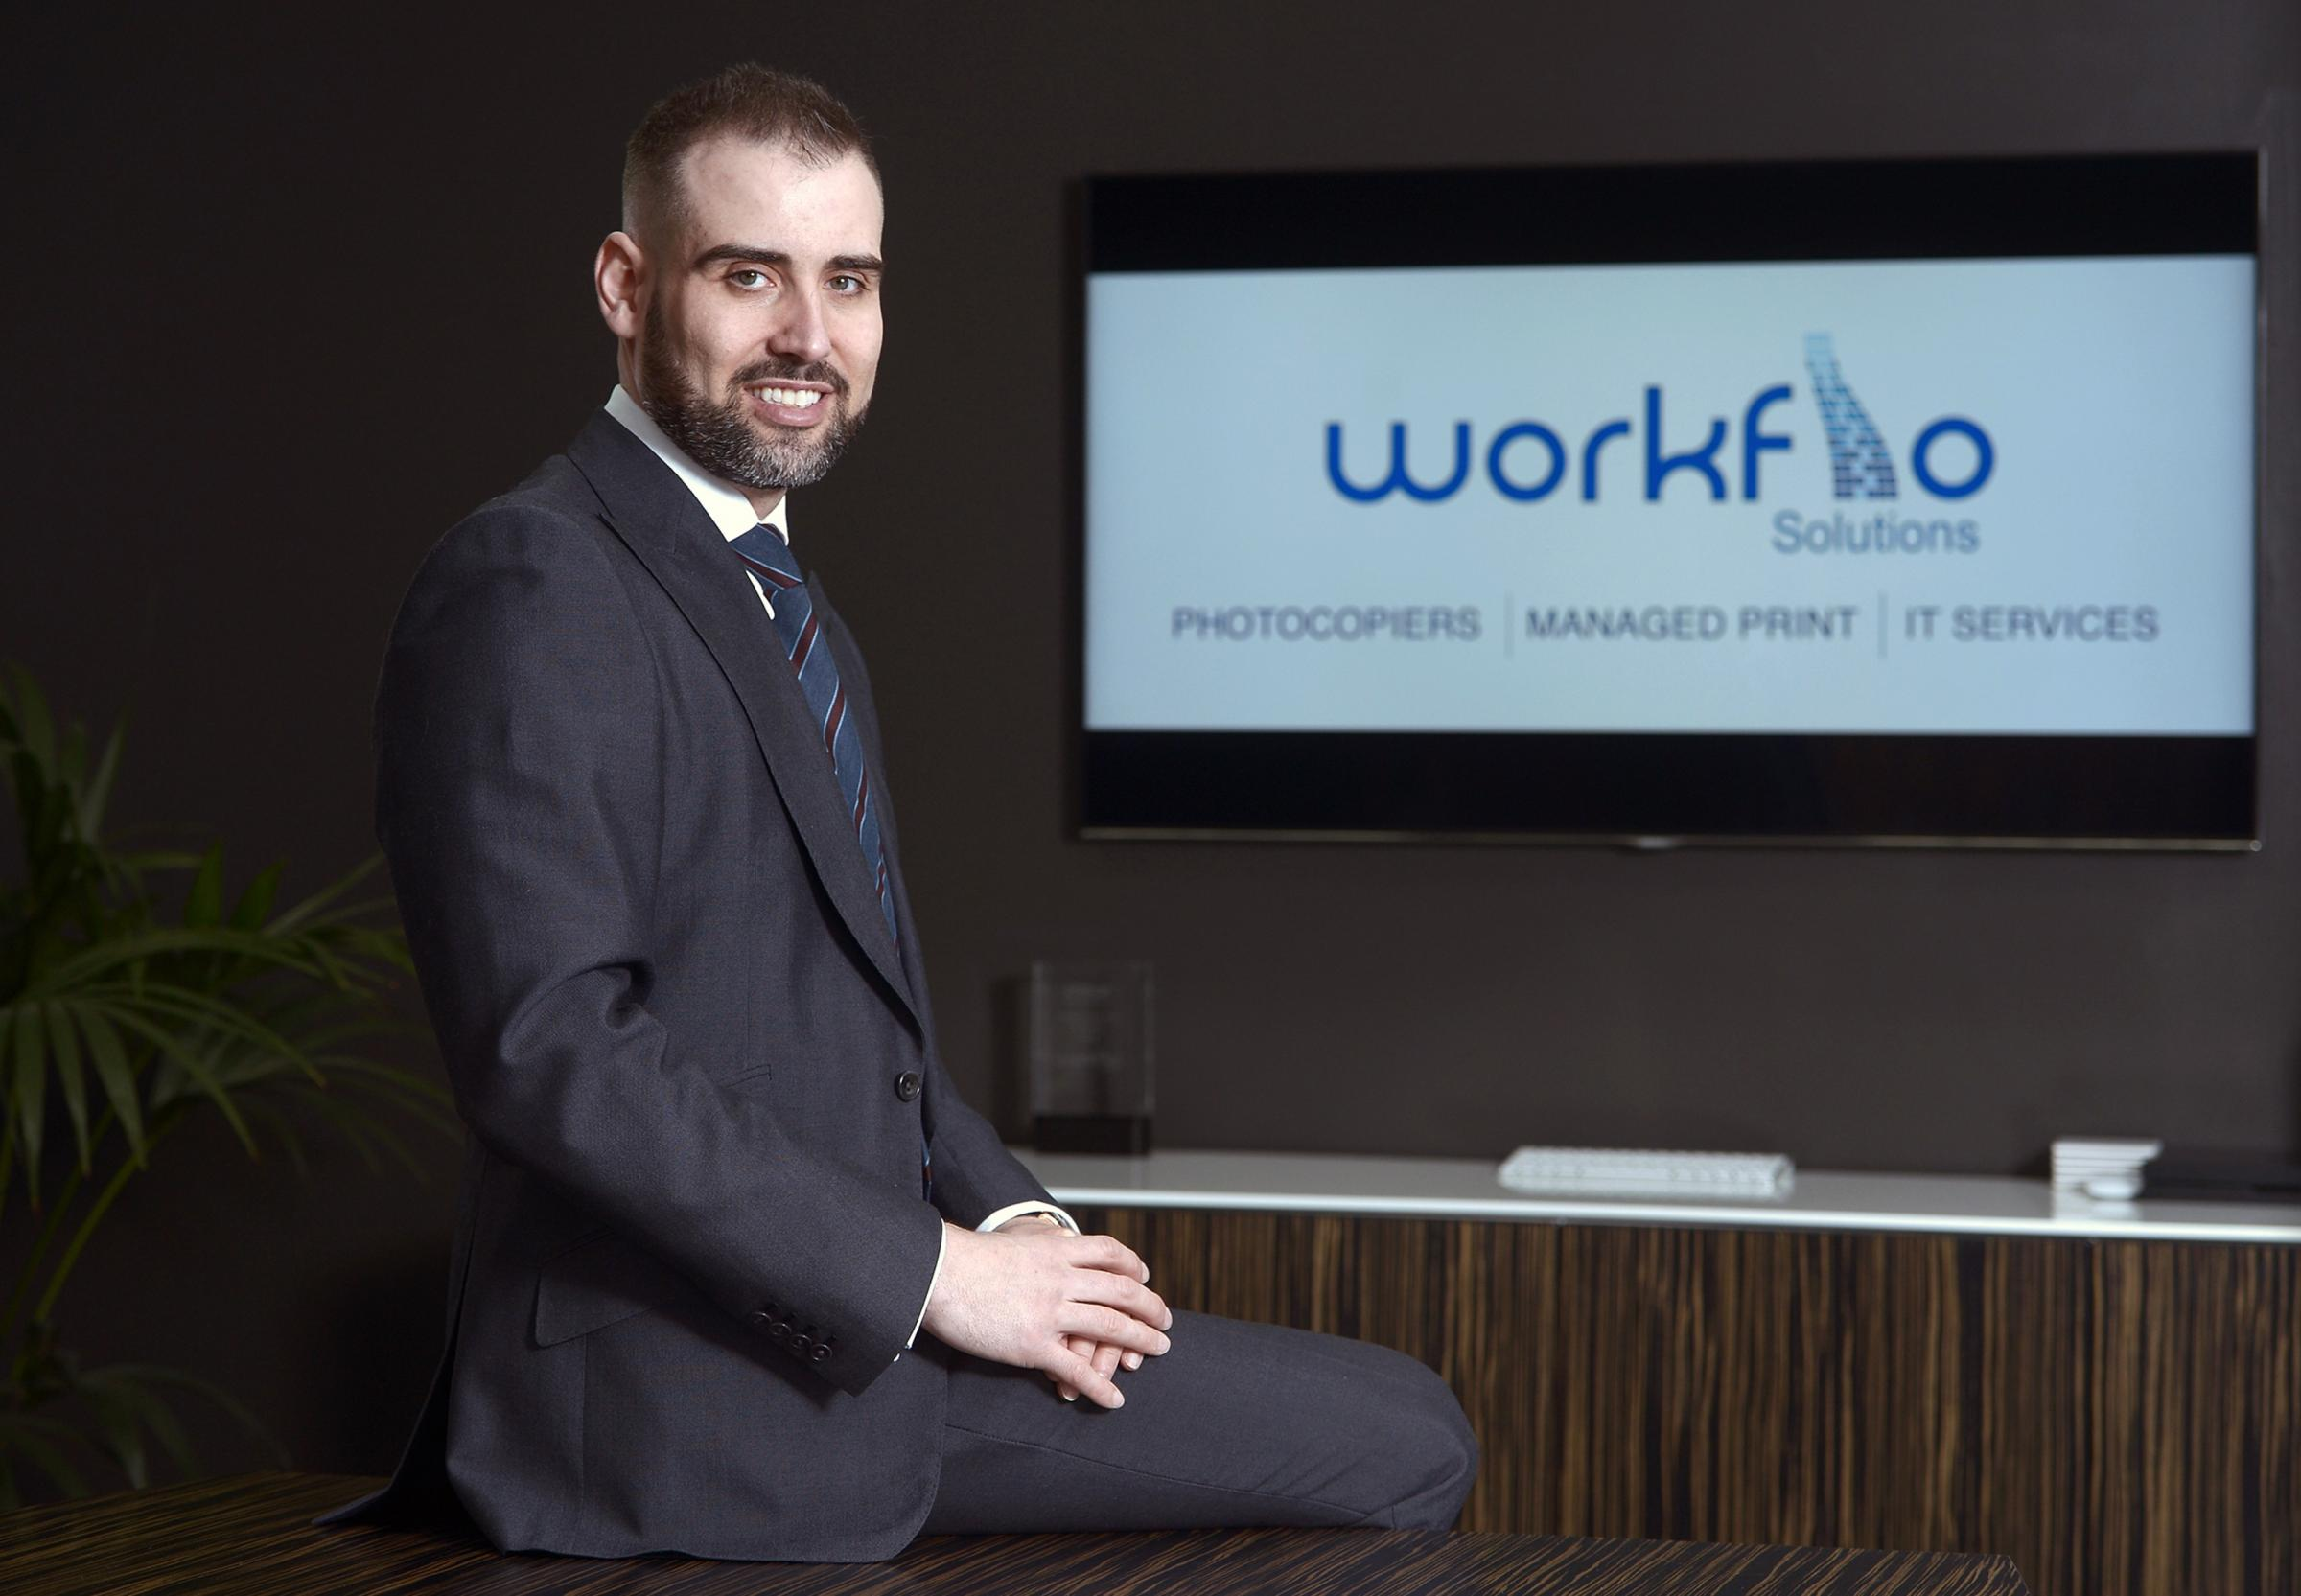 Michael Field set up his IT services business in 2007 on his credit card and now employs 18 staff